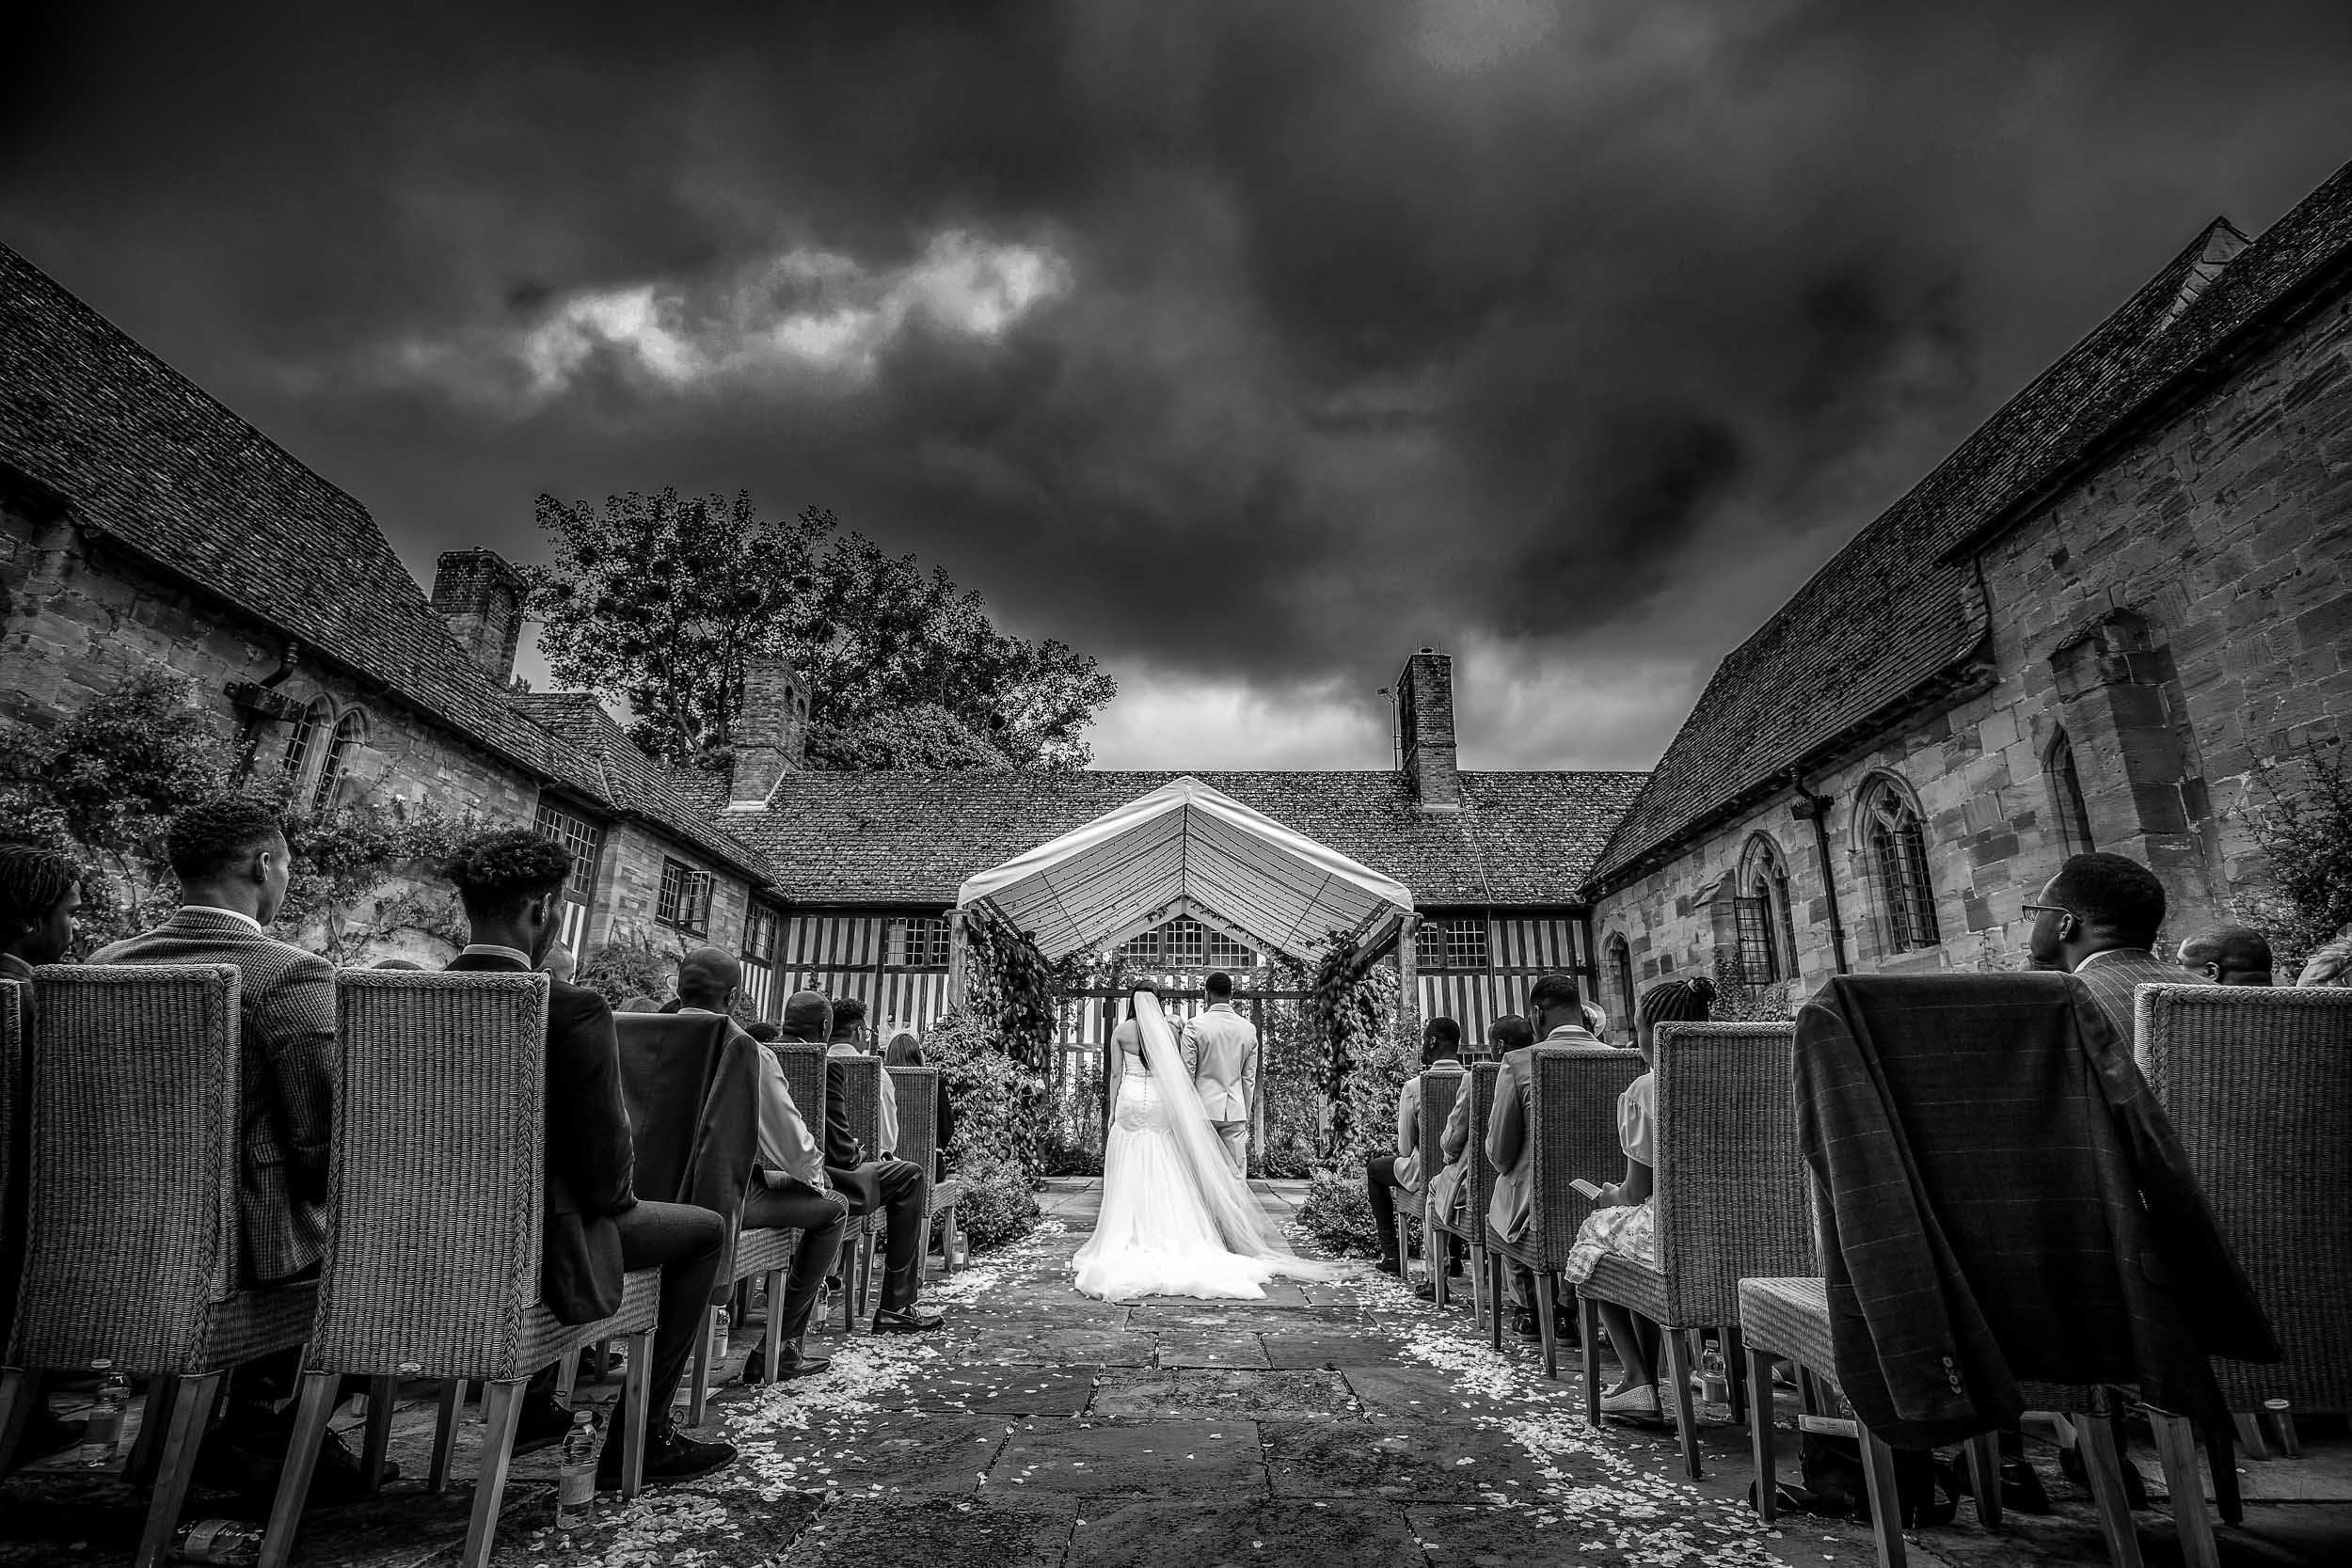 wedding photographers in Herefordshire, Herefordshire wedding photographer, Wedding Photographer, Brinsop Court wedding photographer, Wedding photographer at Brinsop Court, Herefordshire, West-midlands,